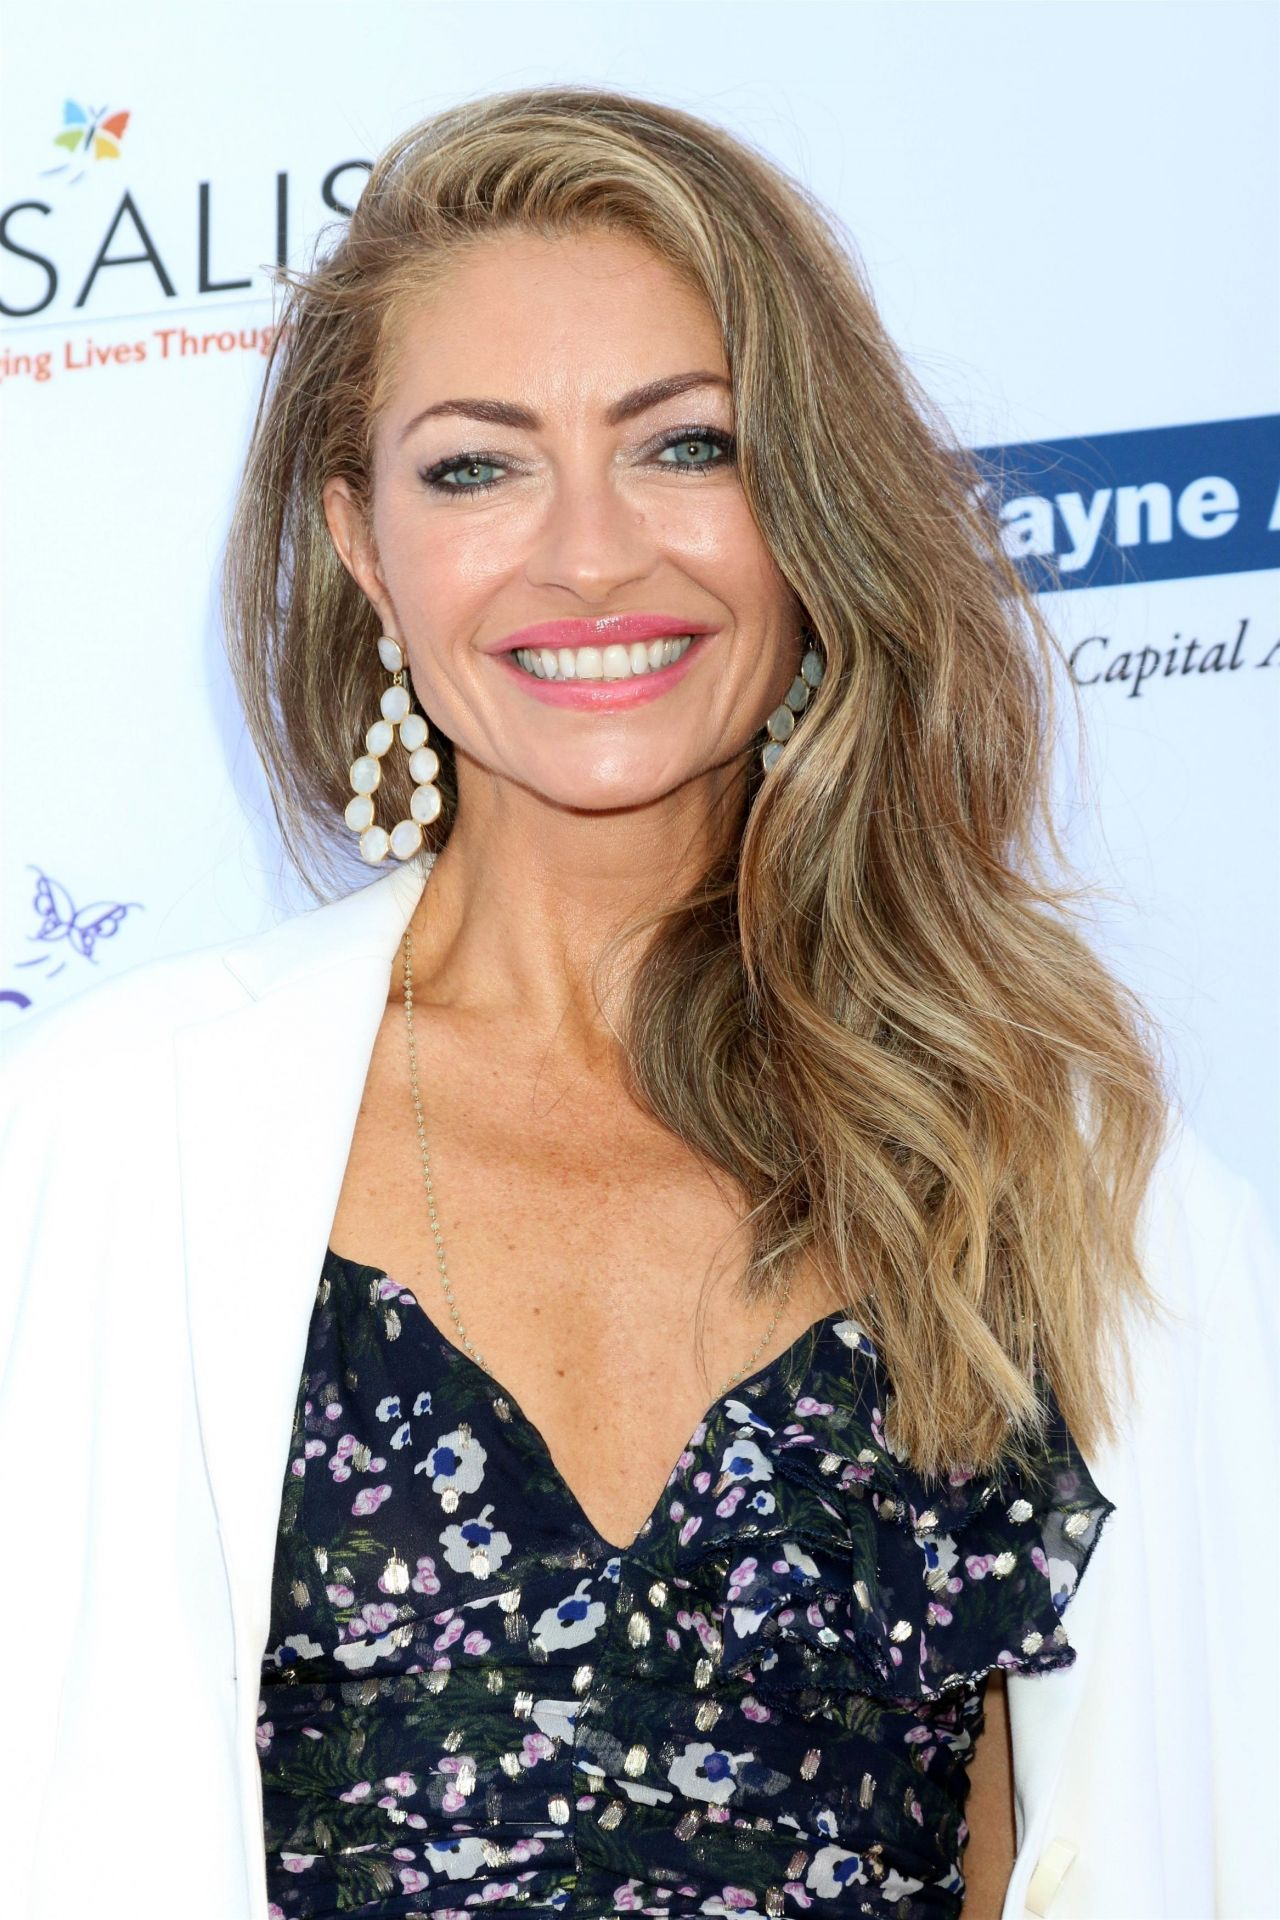 https://celebmafia.com/wp-content/uploads/2018/06/rebecca-gayheart-2018-chrysalis-butterfly-ball-in-la-5.jpg